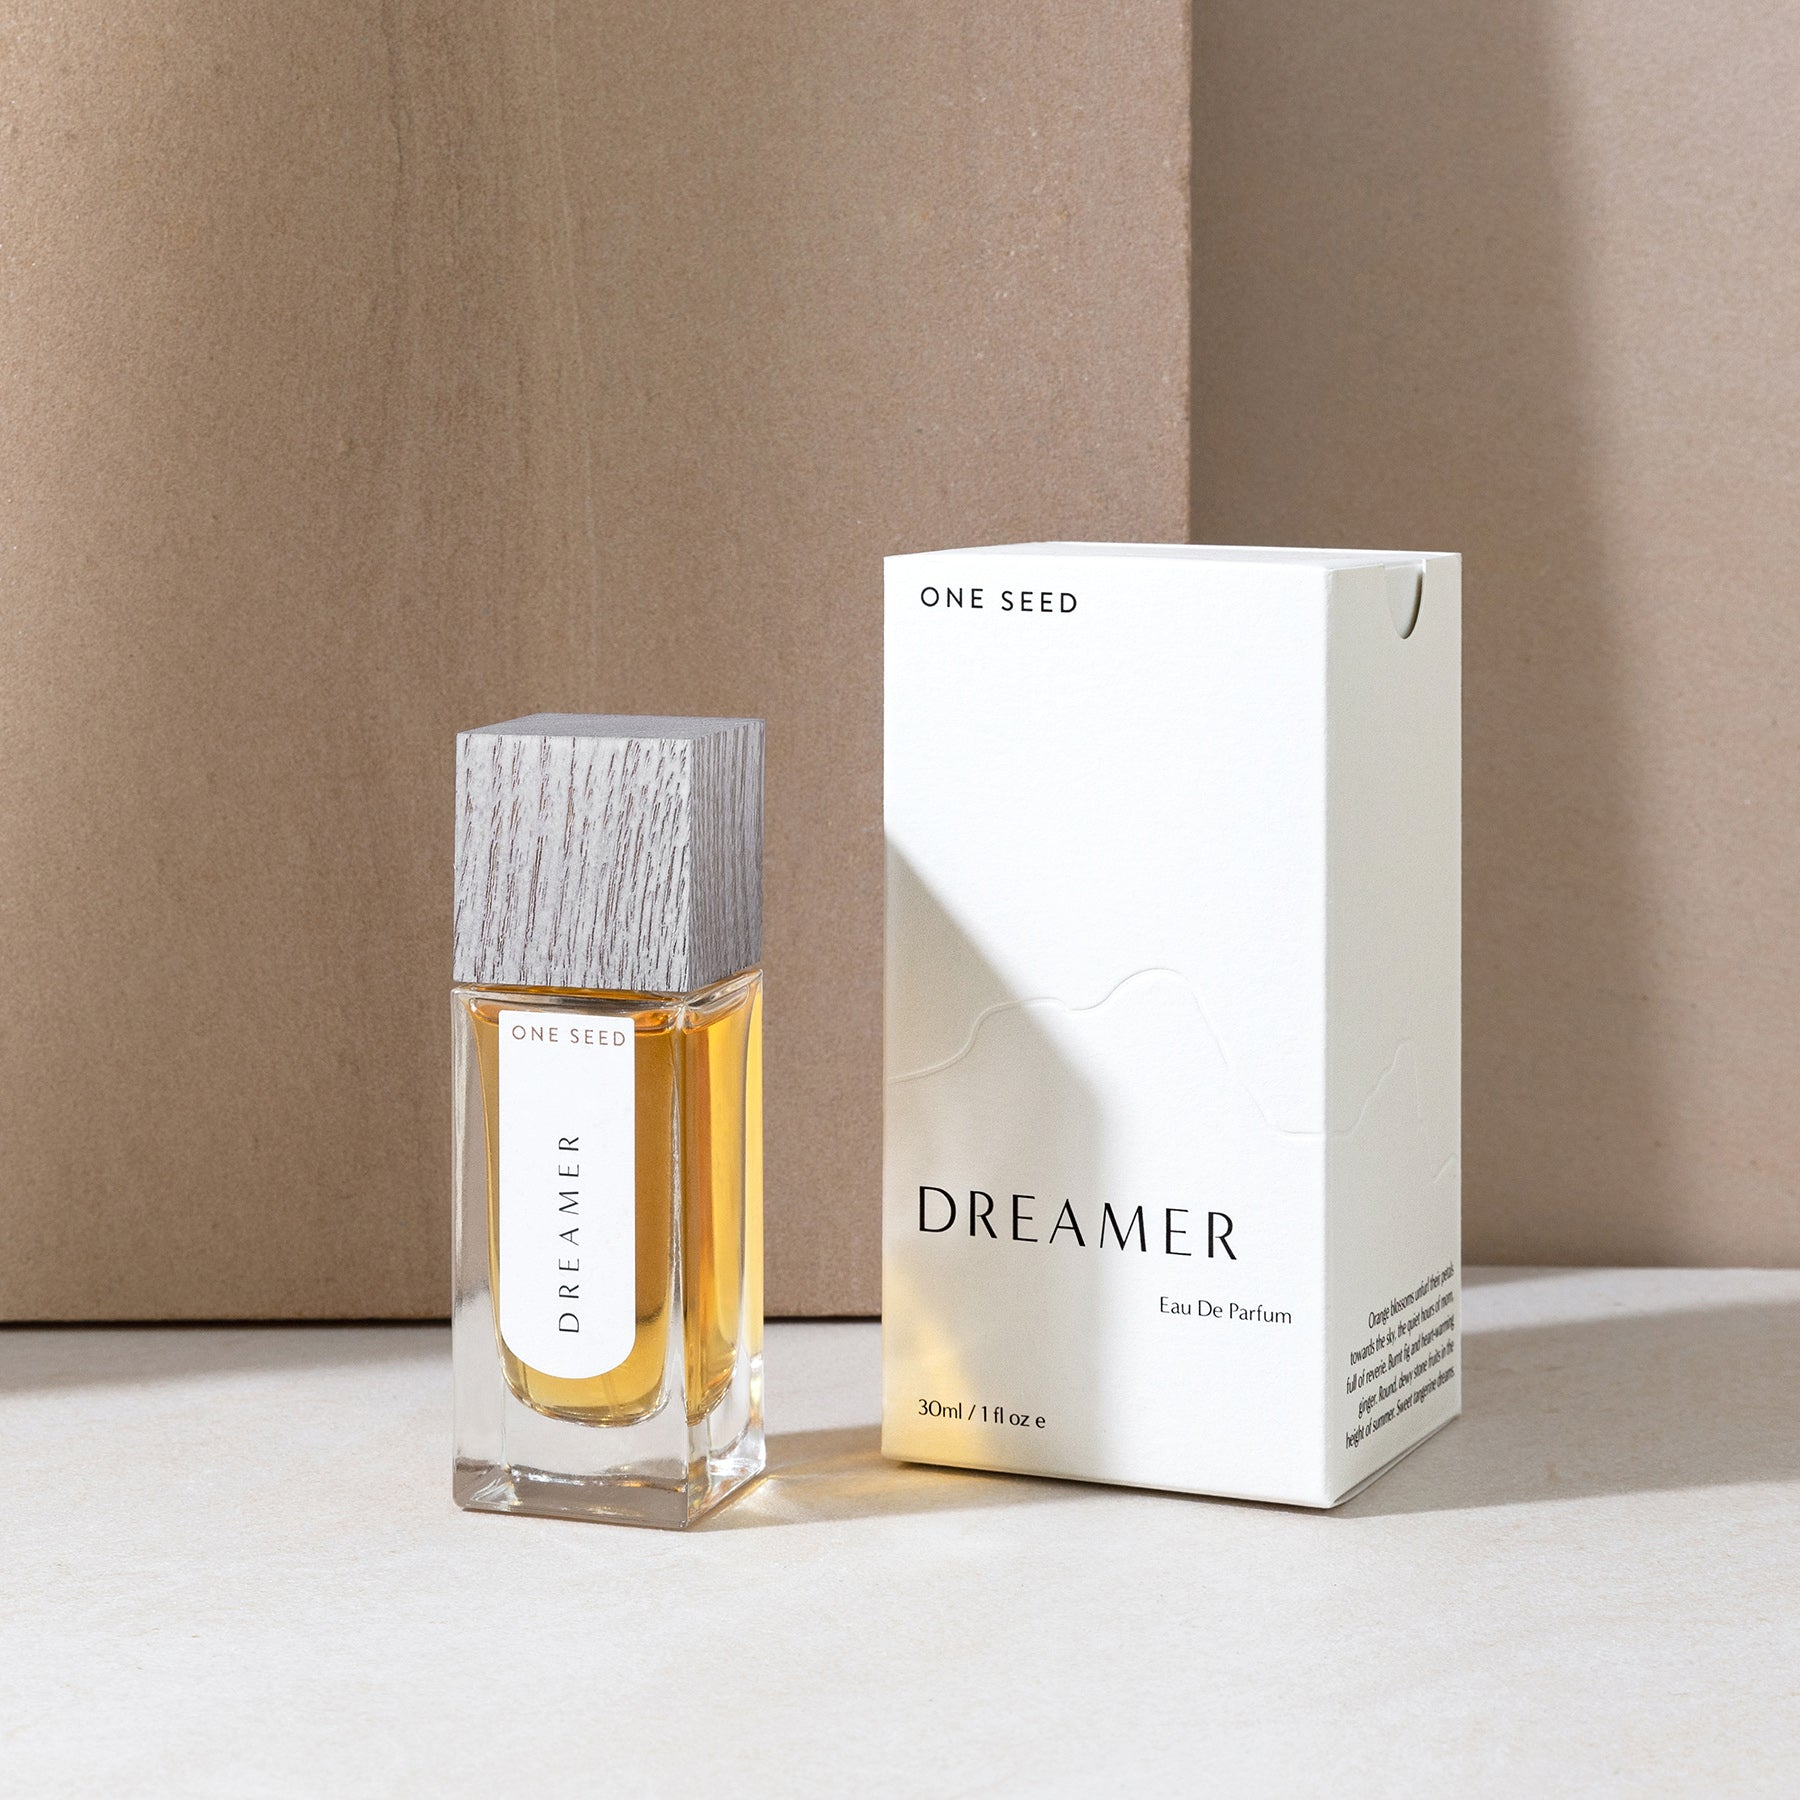 dreamer fresh floral perfume one seed natural organic fragrance